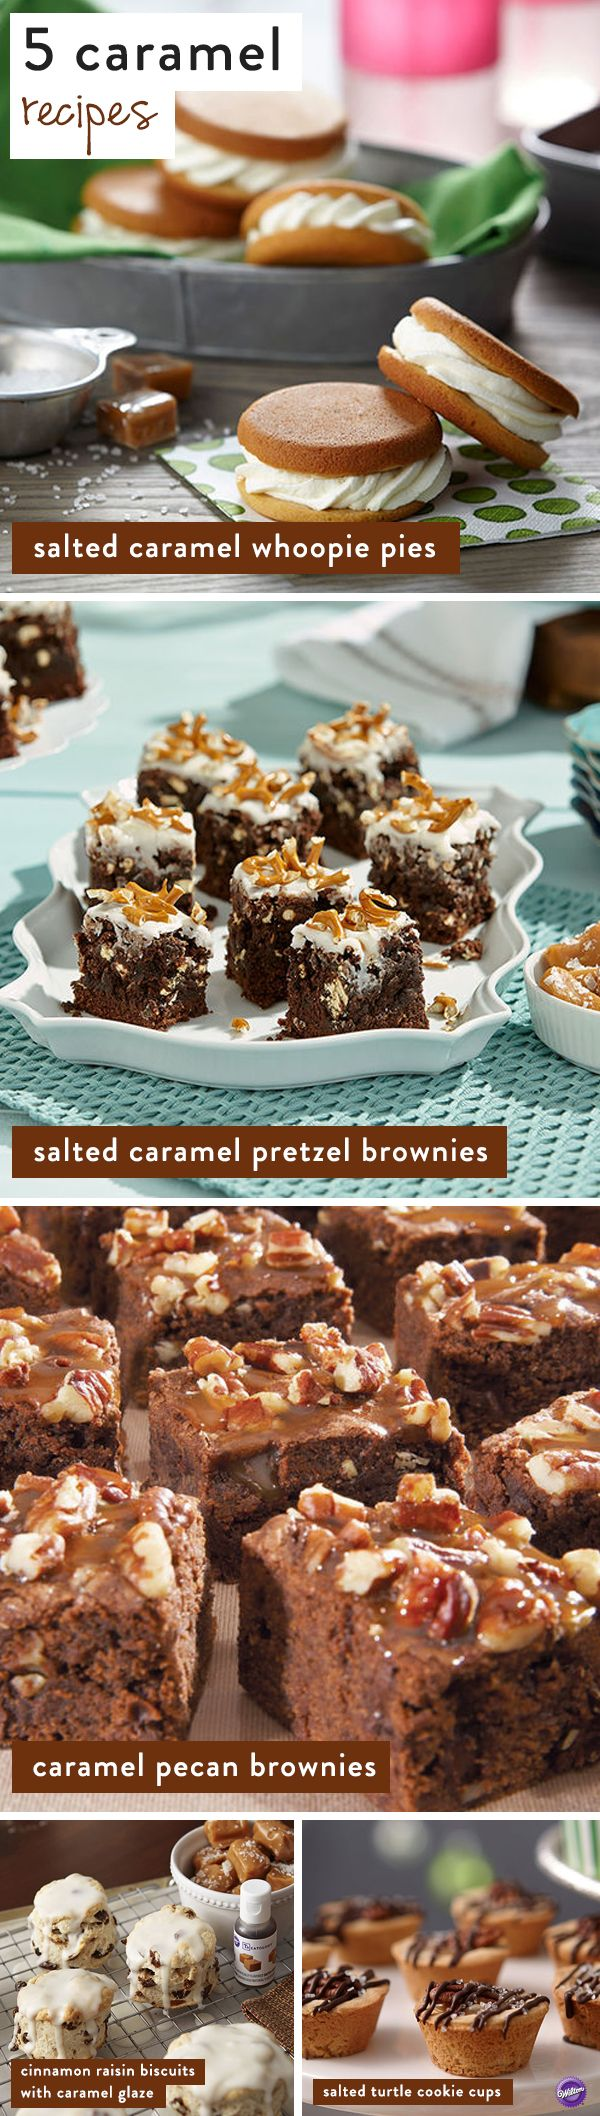 Five superb yummy caramel recipes for you to try: salted caramel whoopie pie, salted caramel pretzel brownies, caramel pecan brownies, cinnamon biscuit with caramel galze, and salted cookie cups!